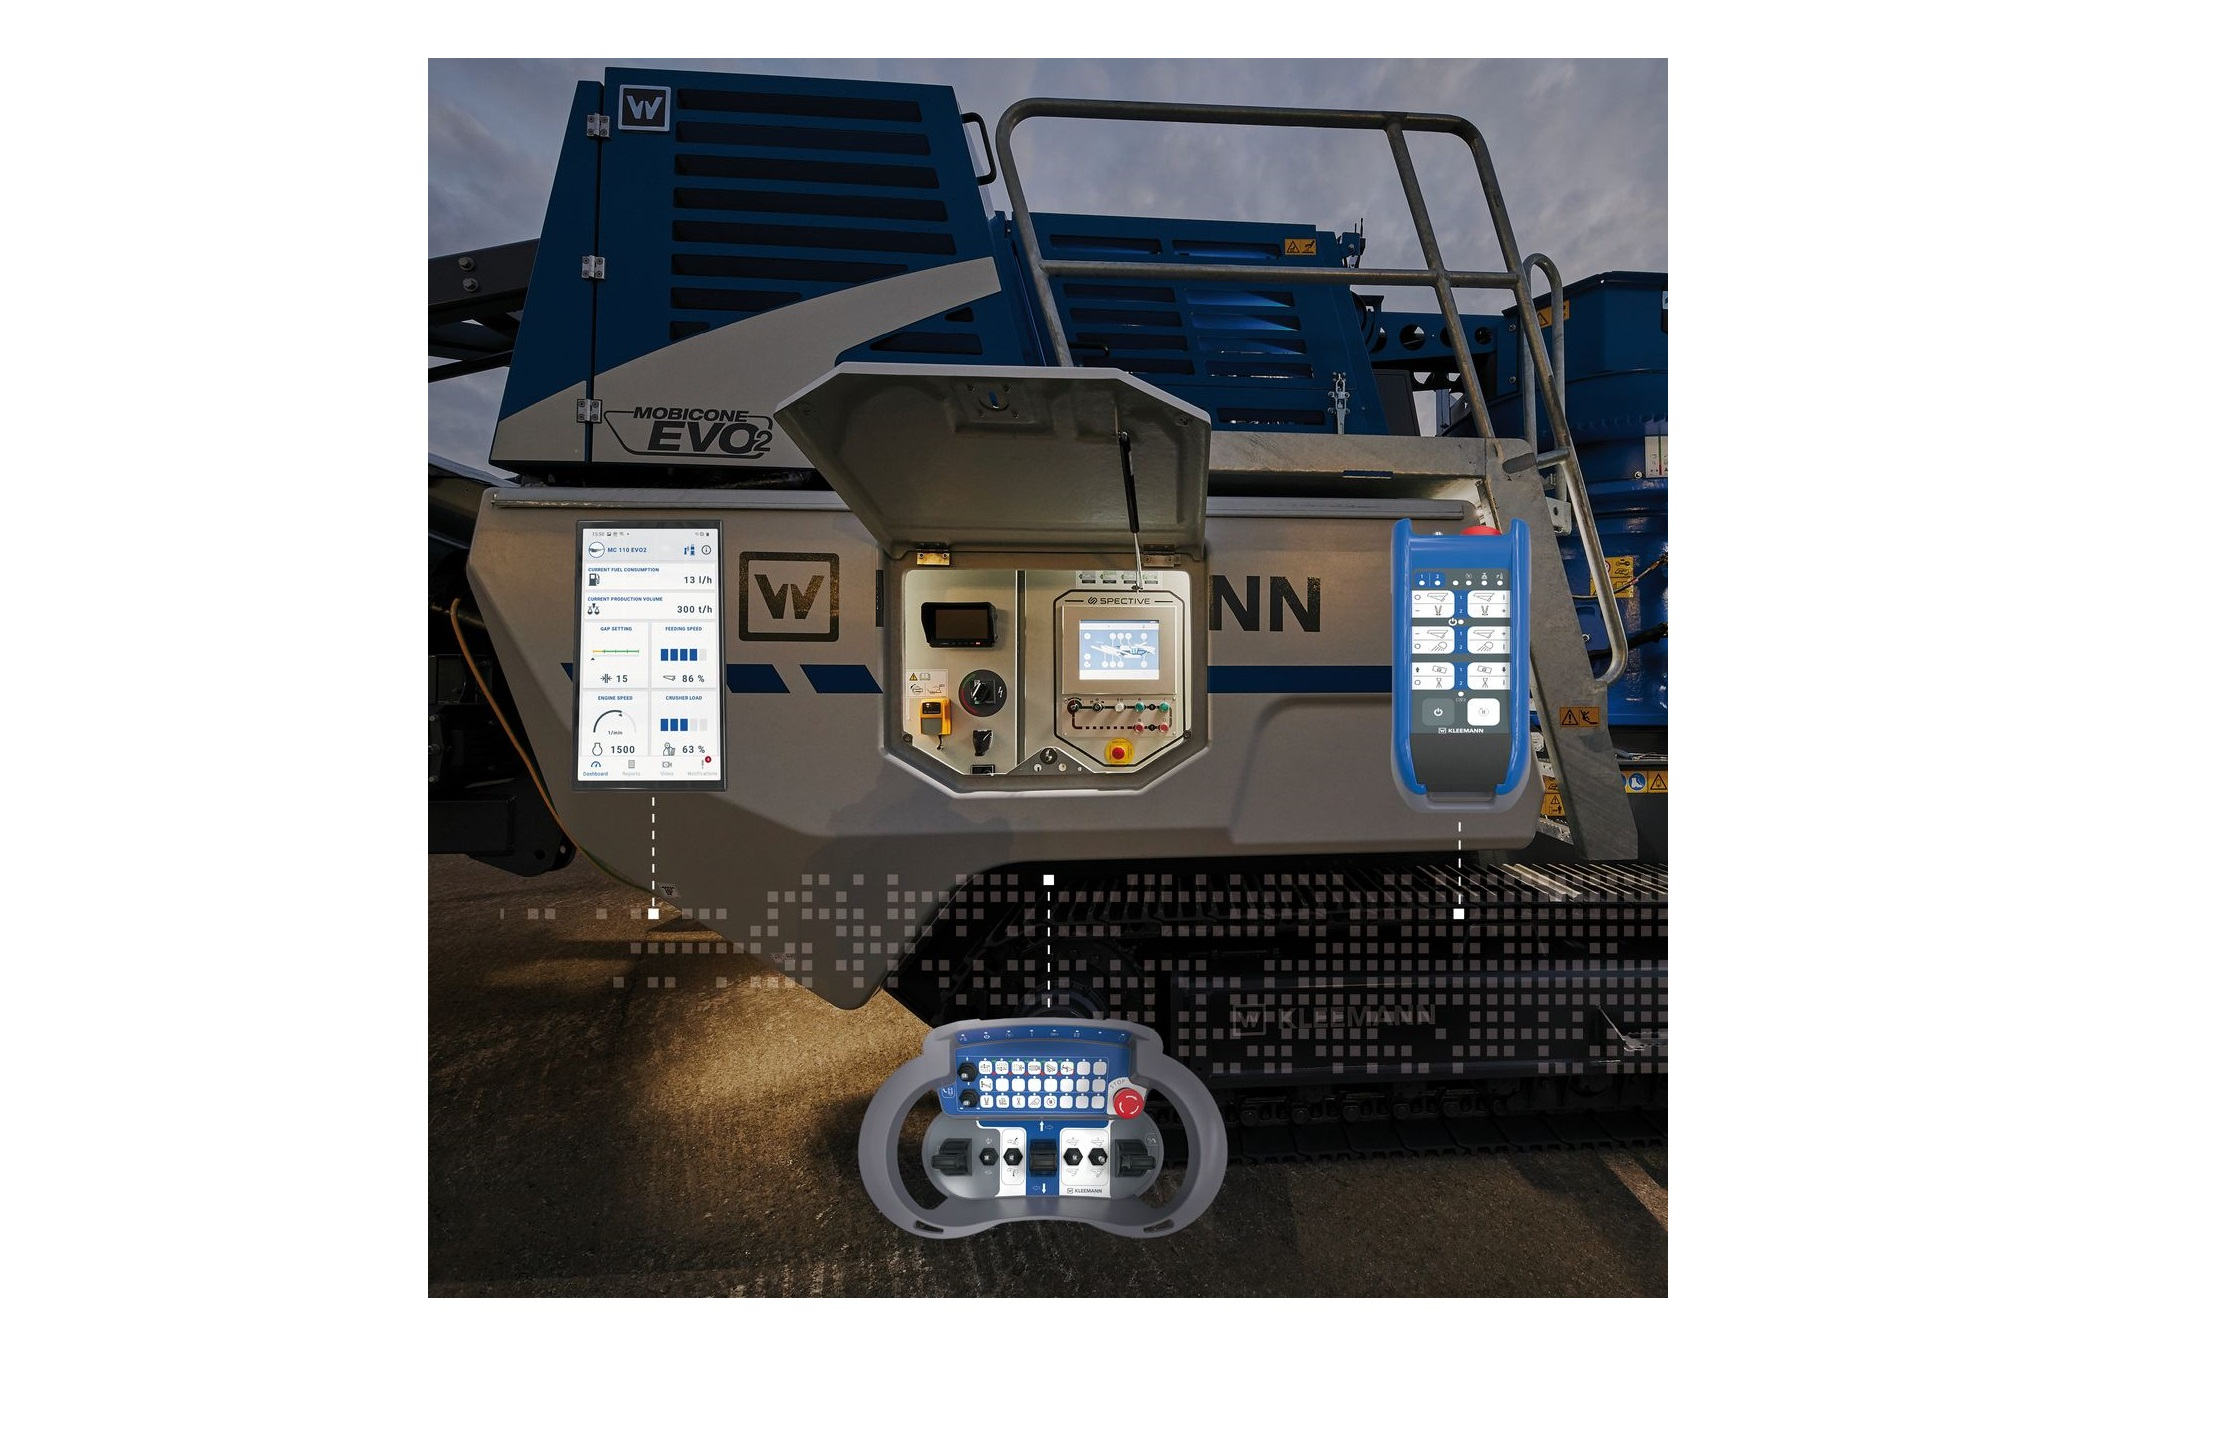 The SPECTIVE operating concept: touch panel directly at the plant, large radio remote control for the set-up and driving procedures, small radio remote control with all operating functions. SPECTIVE CONNECT - the new app with all relevant plant information and jobsite reporting.